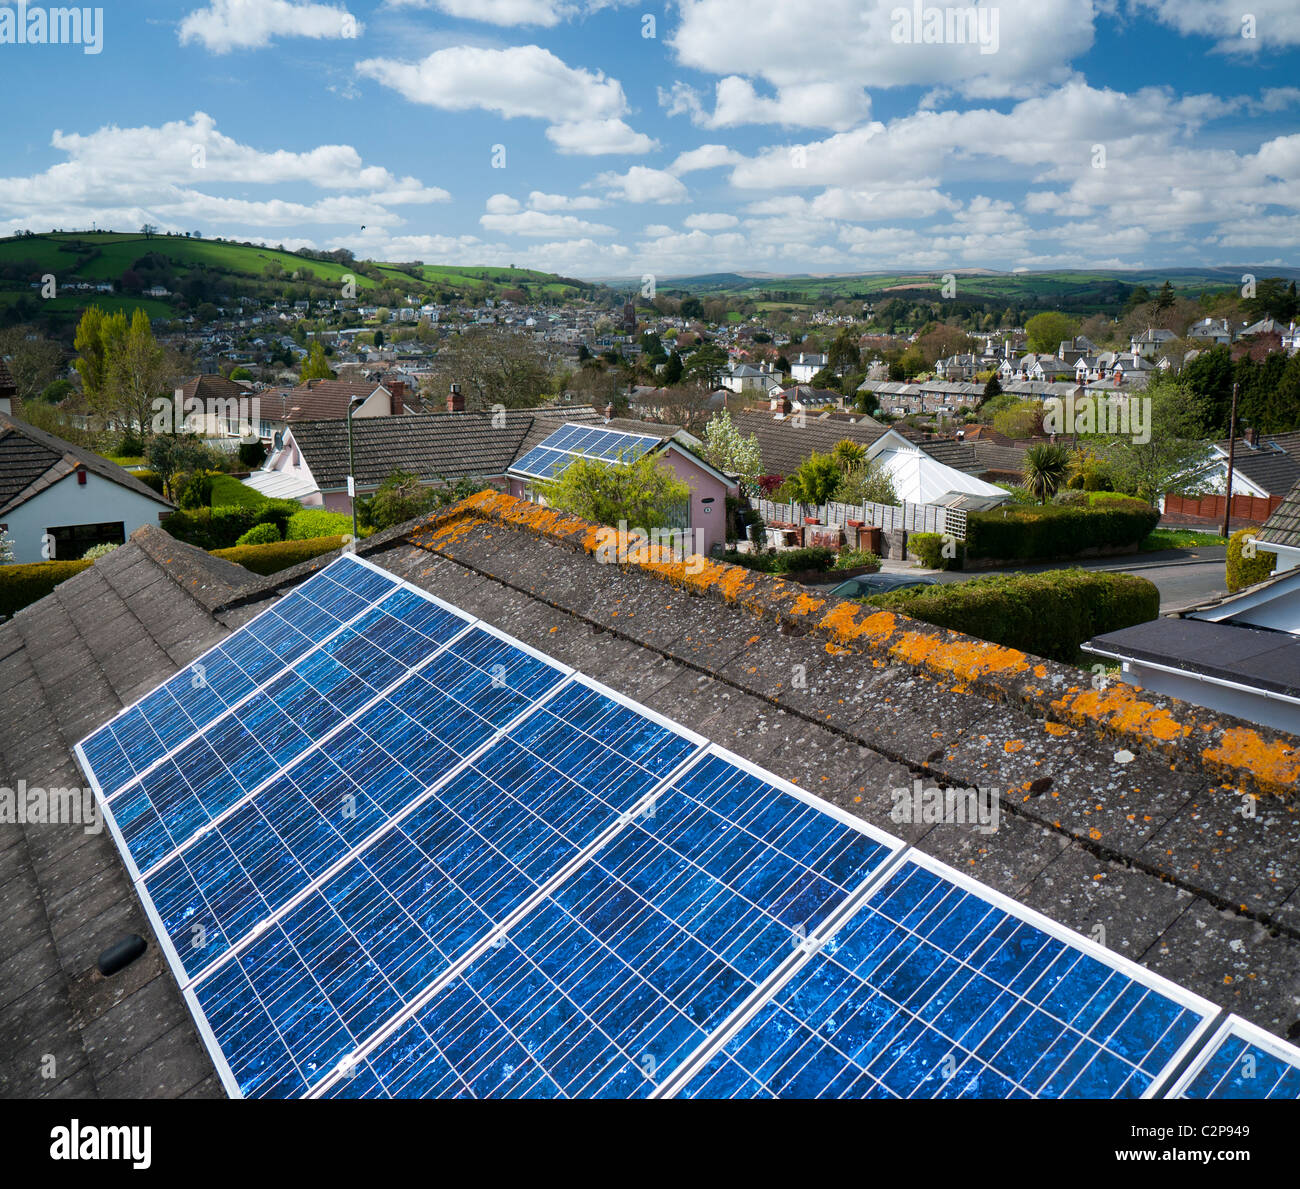 Solar panels on the roof of a house in Totnes Devon UK - Stock Image